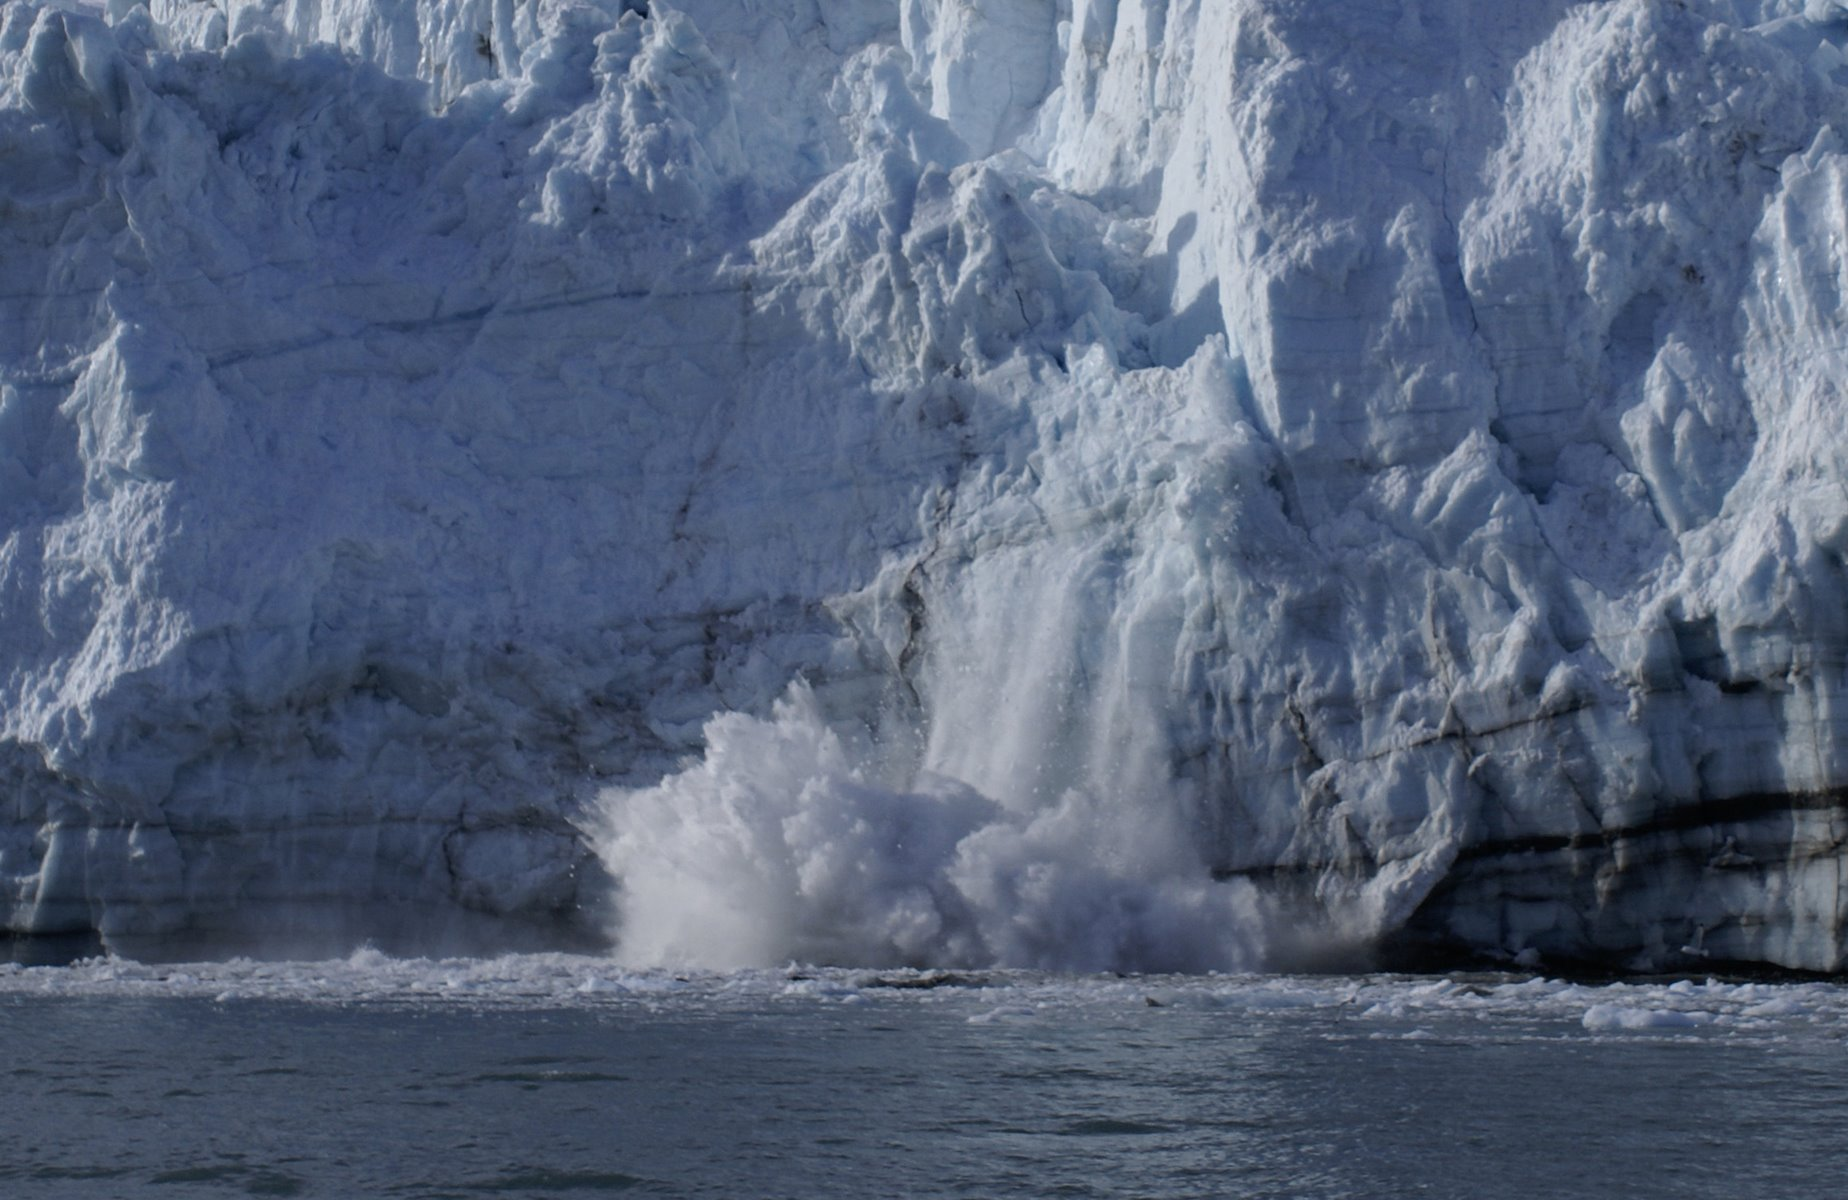 Calving glacier sequence, photo 4